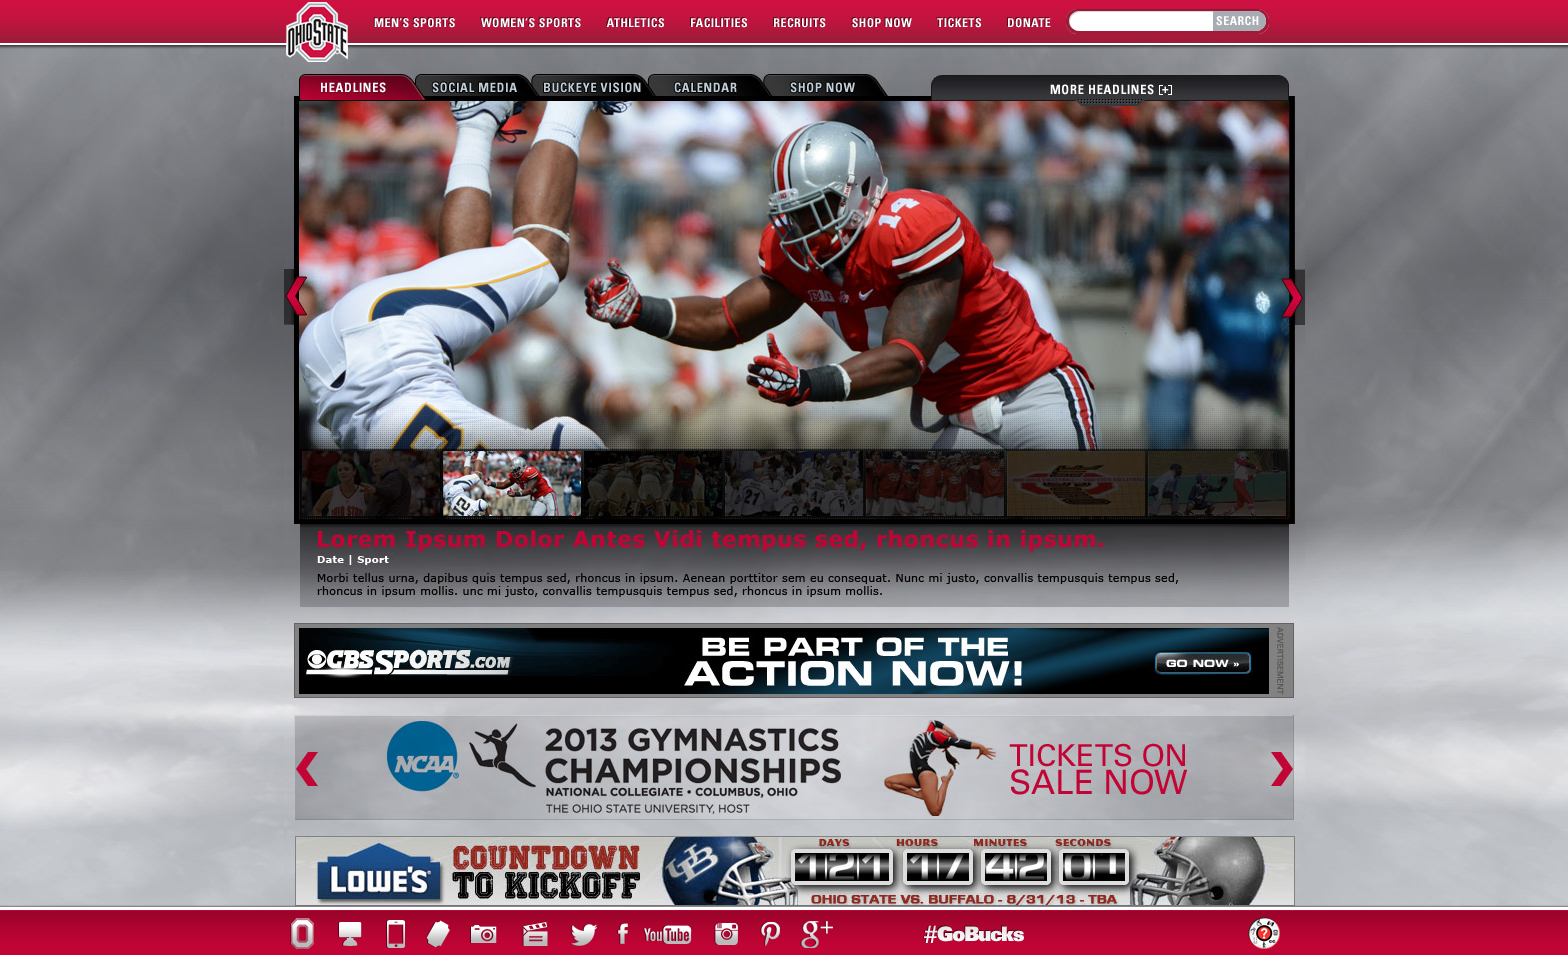 CBS_COLLEGE_SPORTS_-_2016-07-05_16.38.47.png